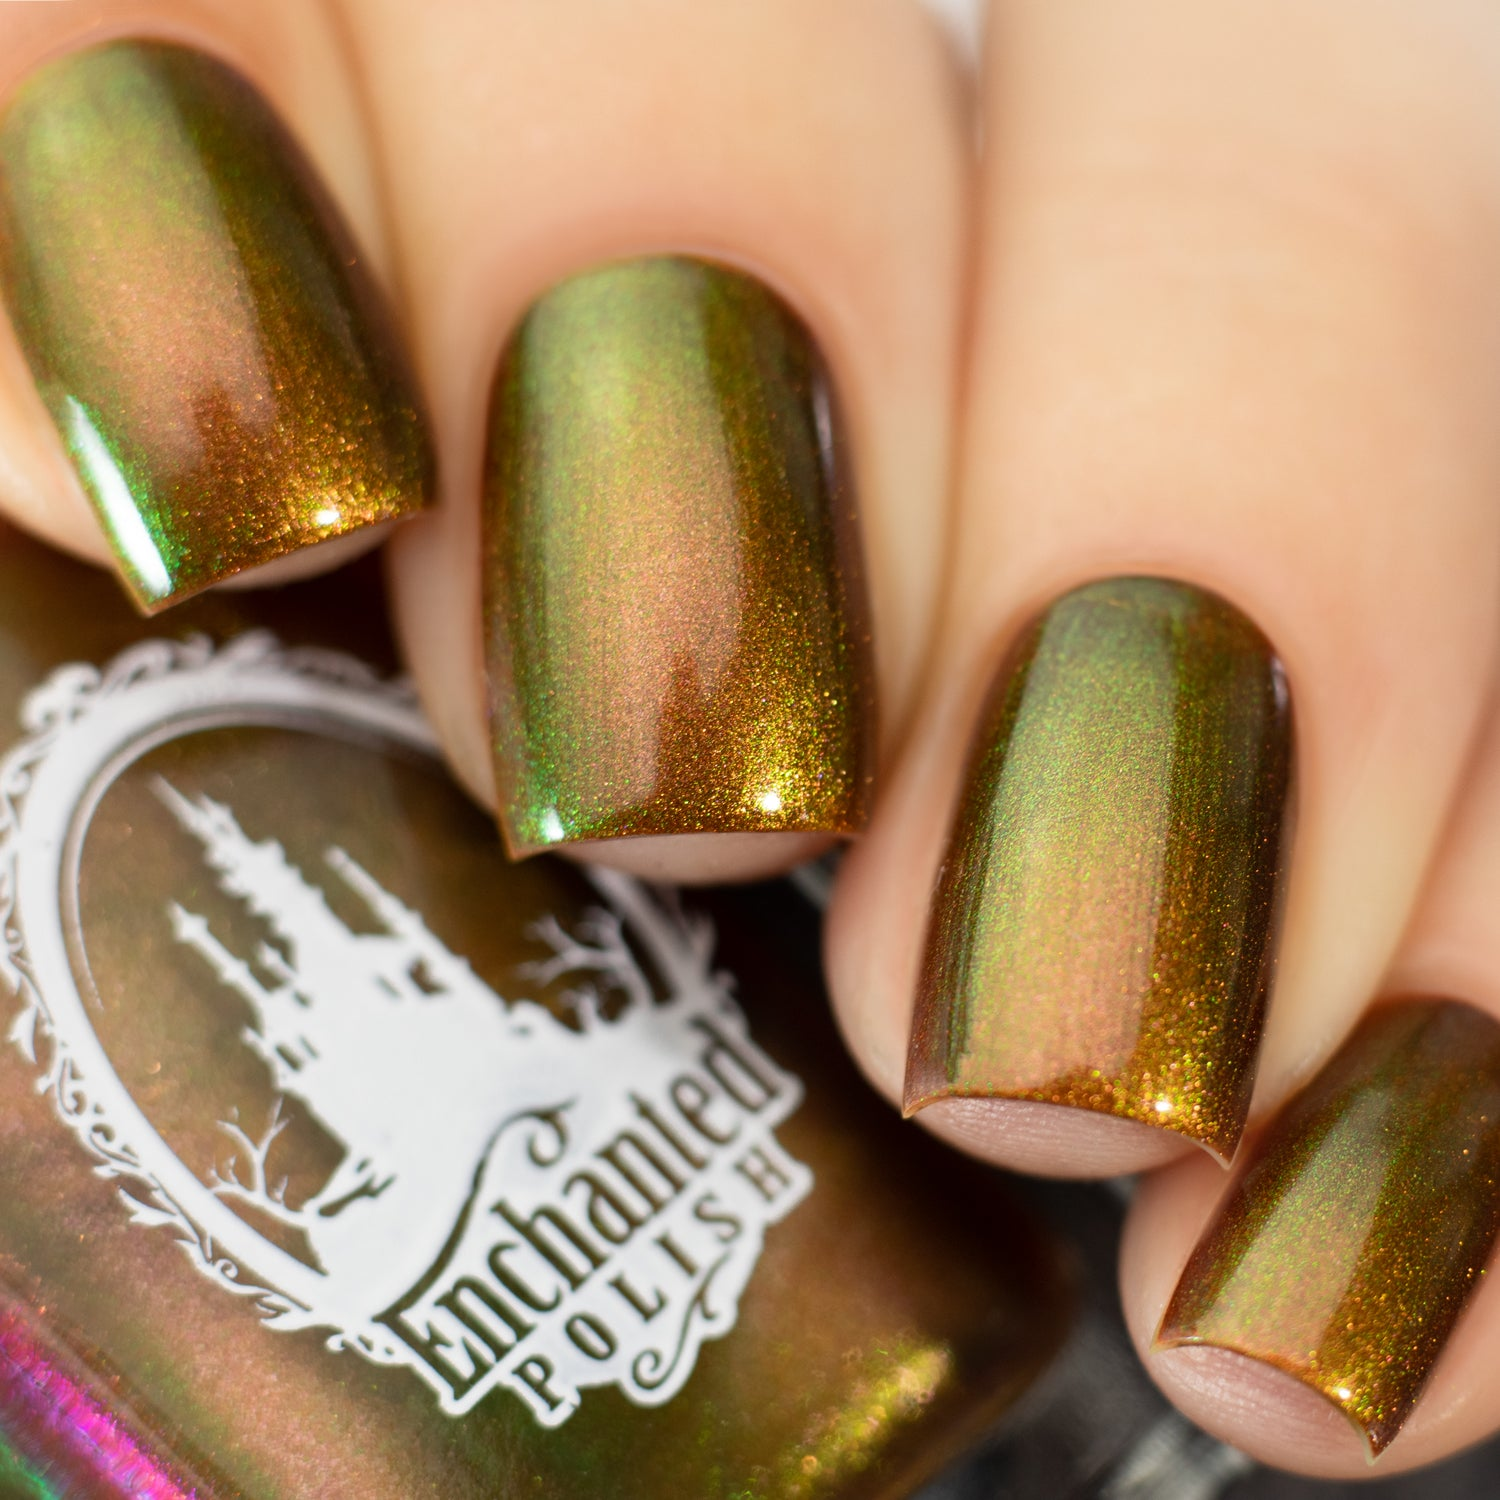 *PRE-SALE* Enchanted Polish - Shape-shifter